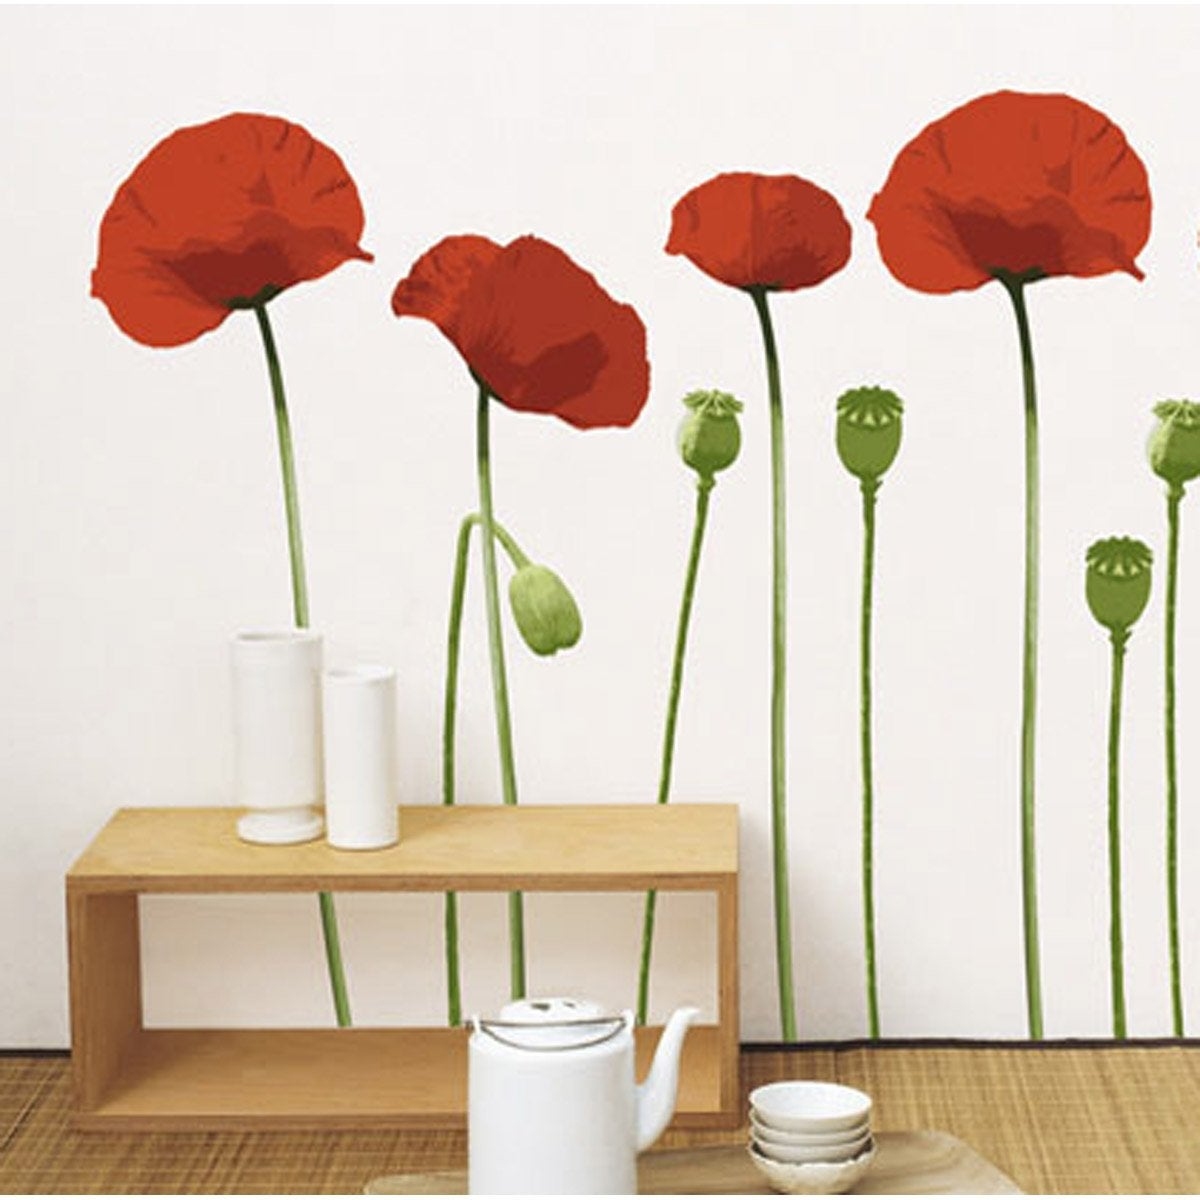 sticker coquelicot 49 cm x 69 cm leroy merlin. Black Bedroom Furniture Sets. Home Design Ideas